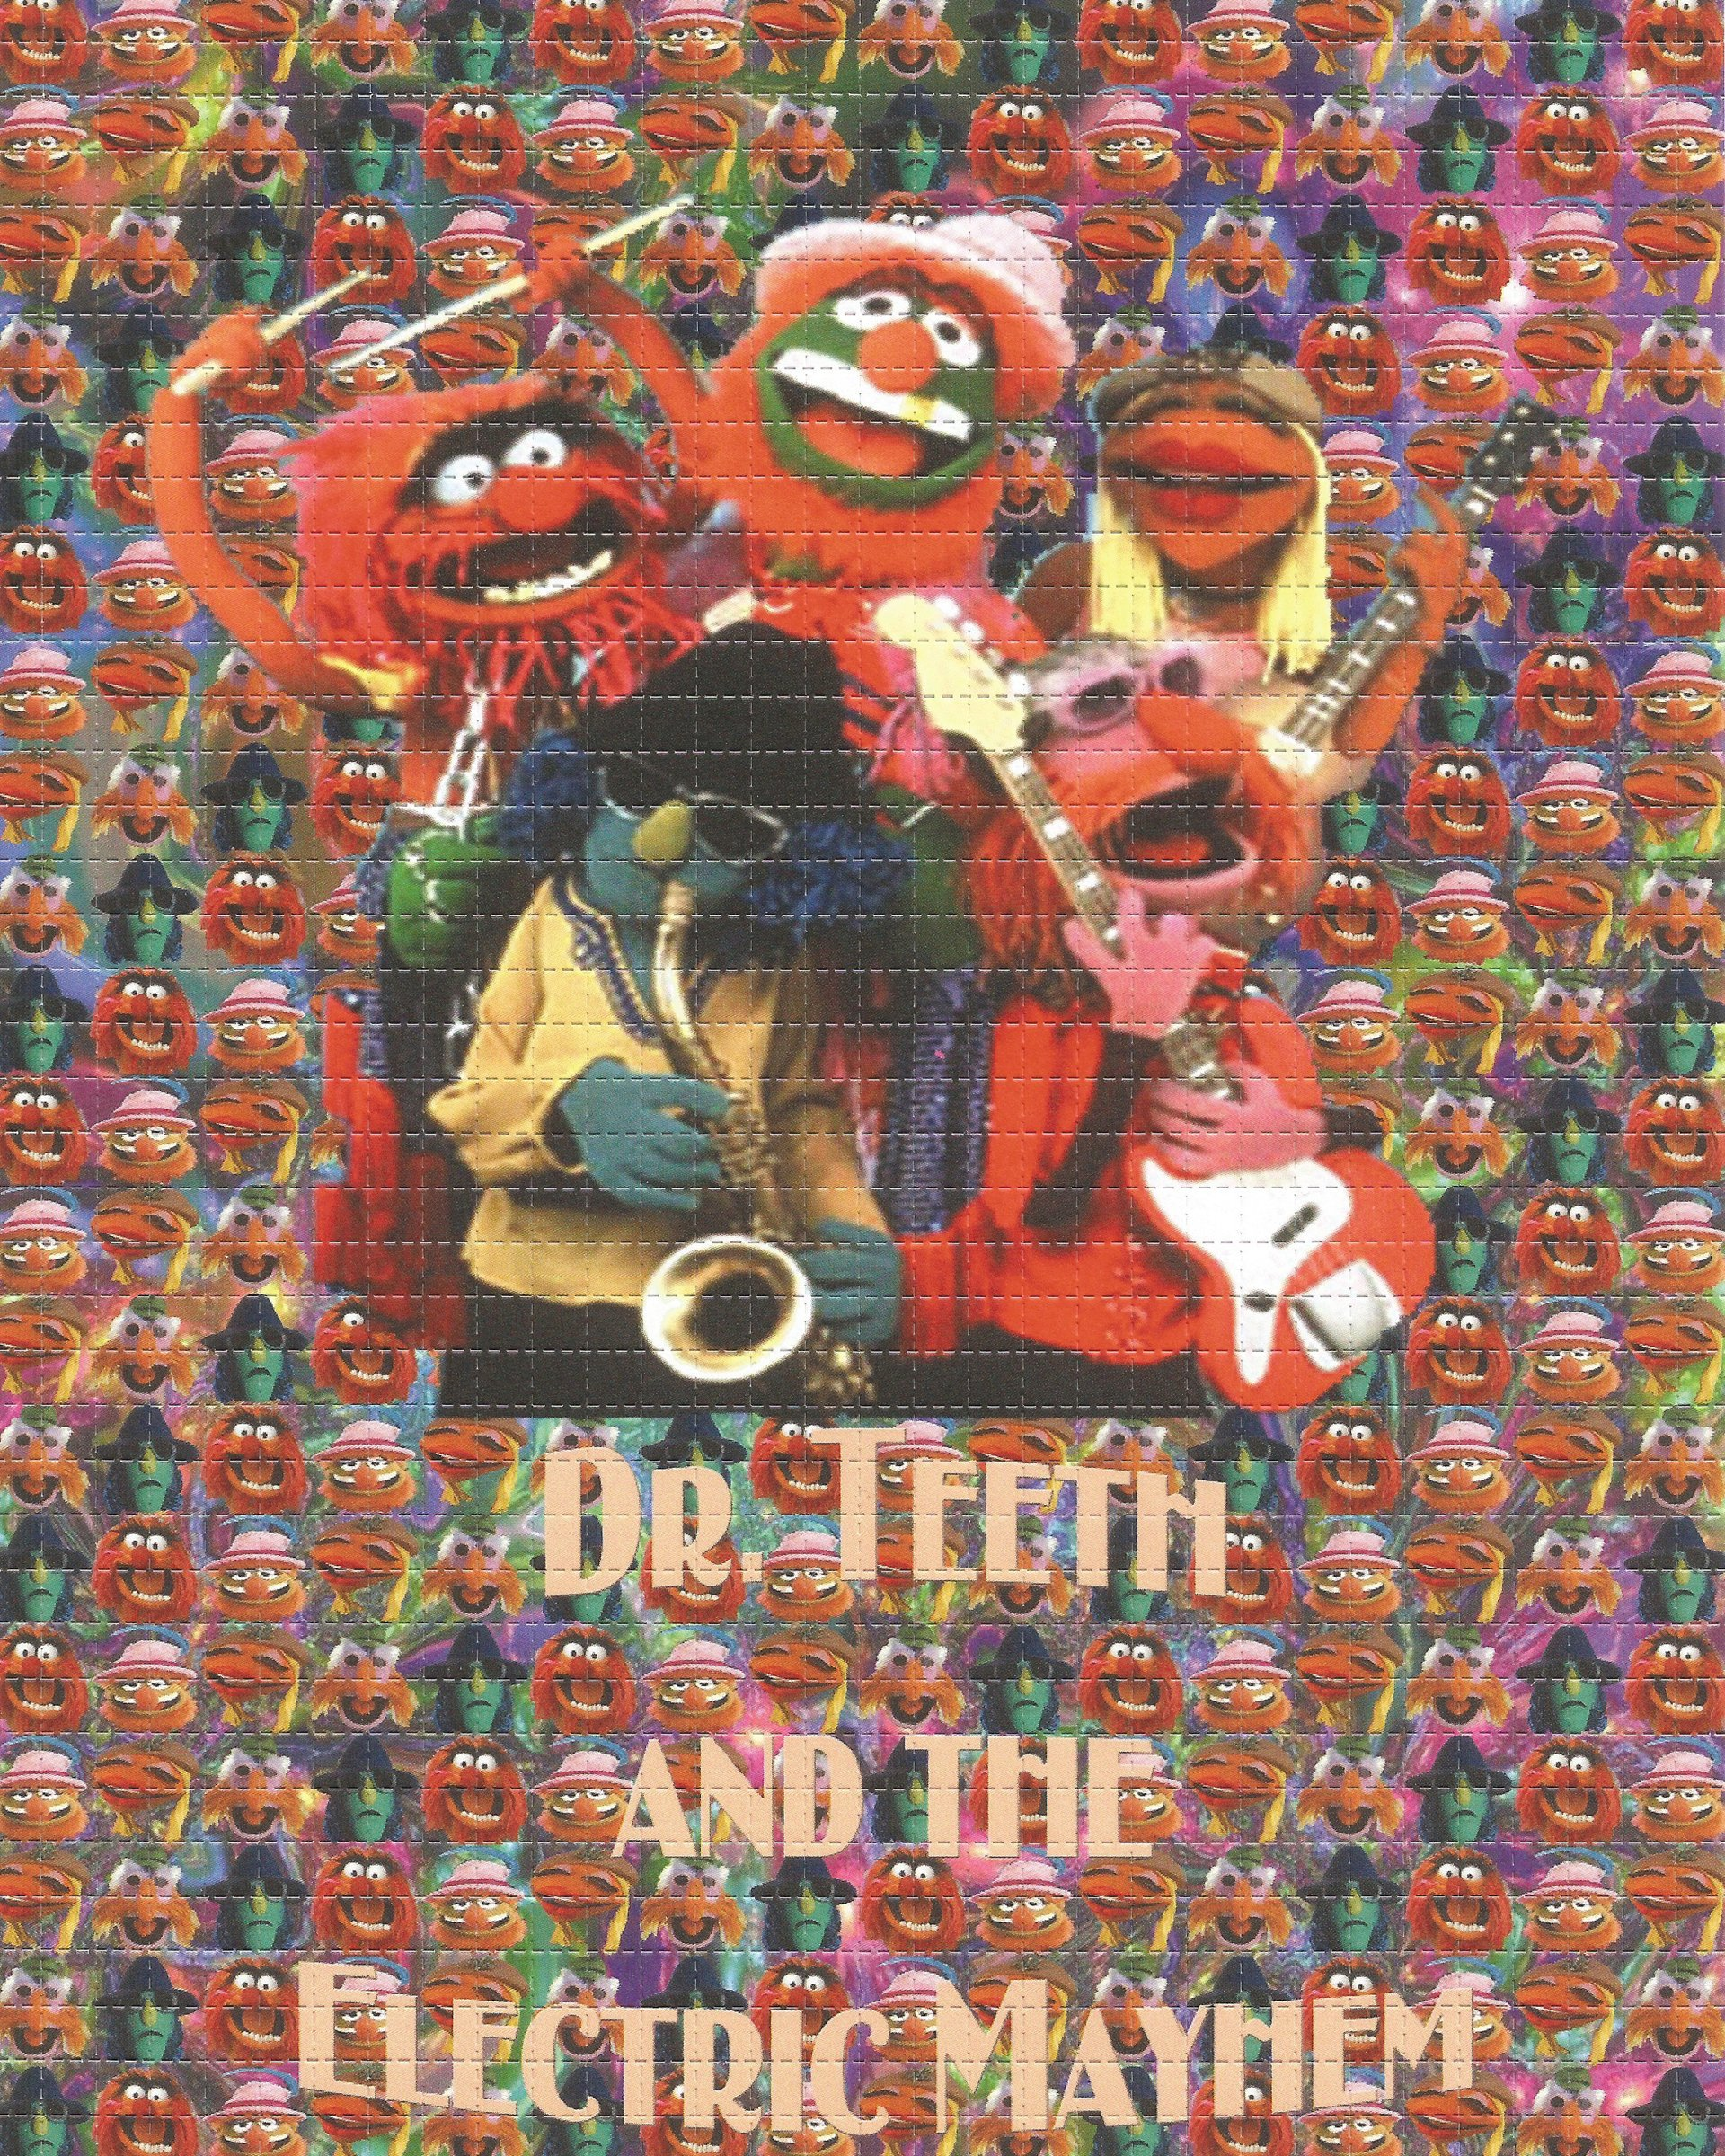 Dr. Teeth and The Electric Mayhem Blotter